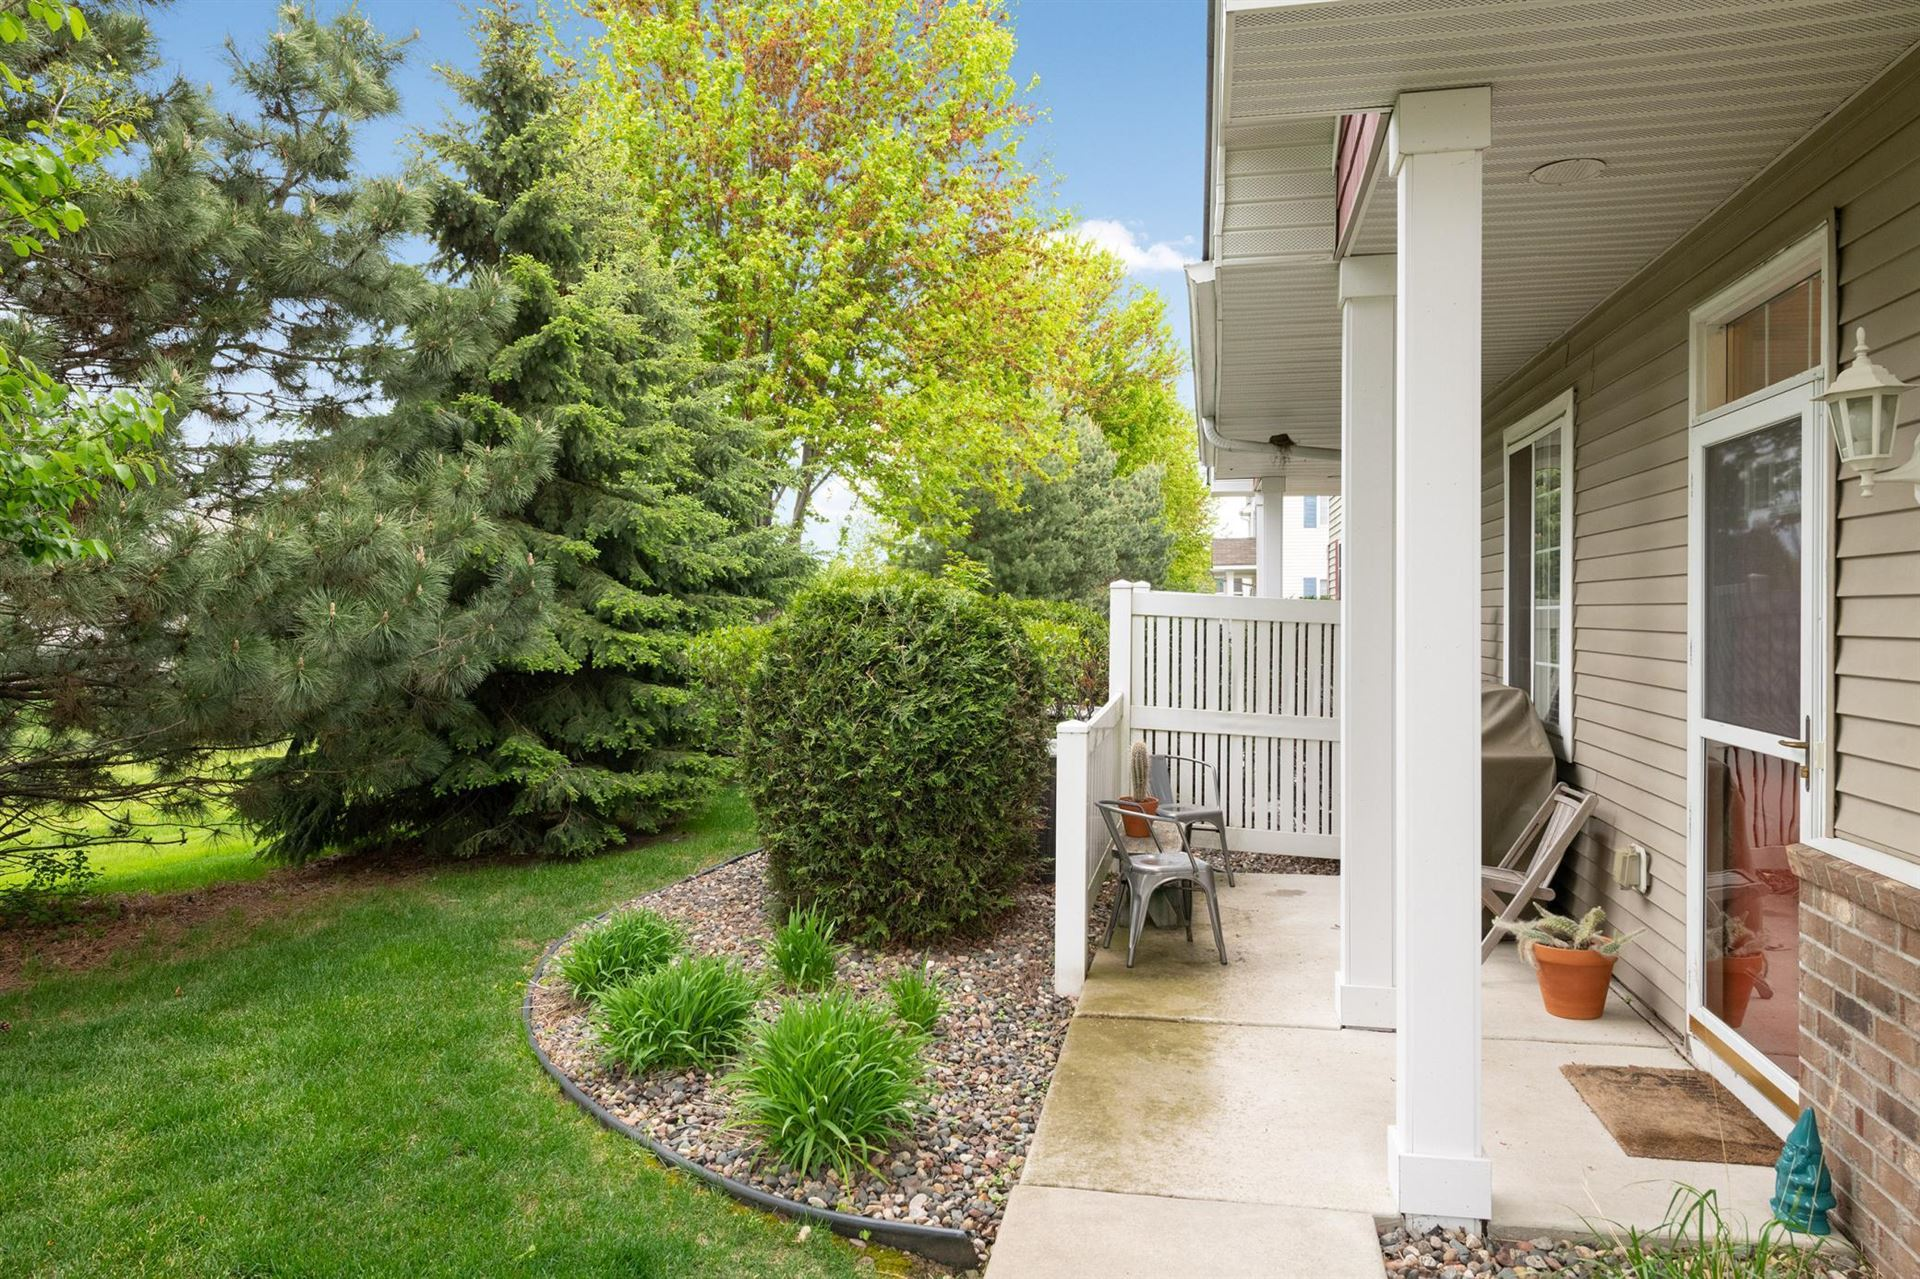 Photo of 19647 Escalade Way #1004, Farmington, MN 55024 (MLS # 5757742)